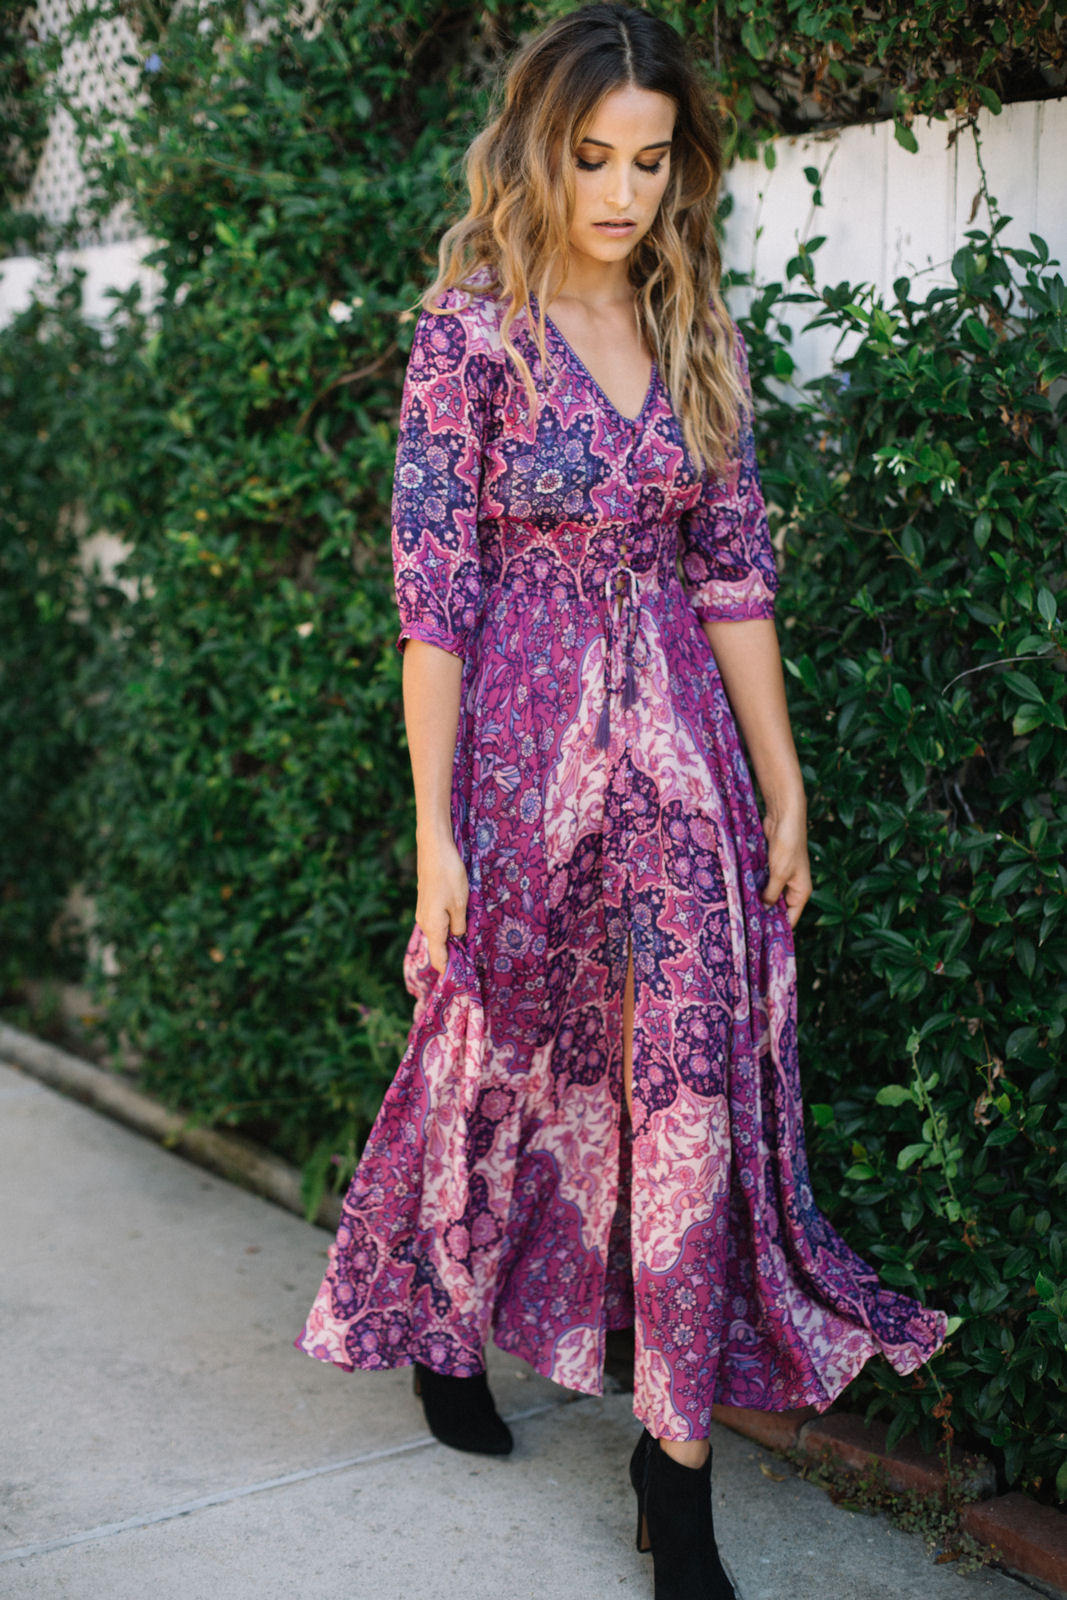 Spell || Kiss the sky gown in violet from Soleil Blue